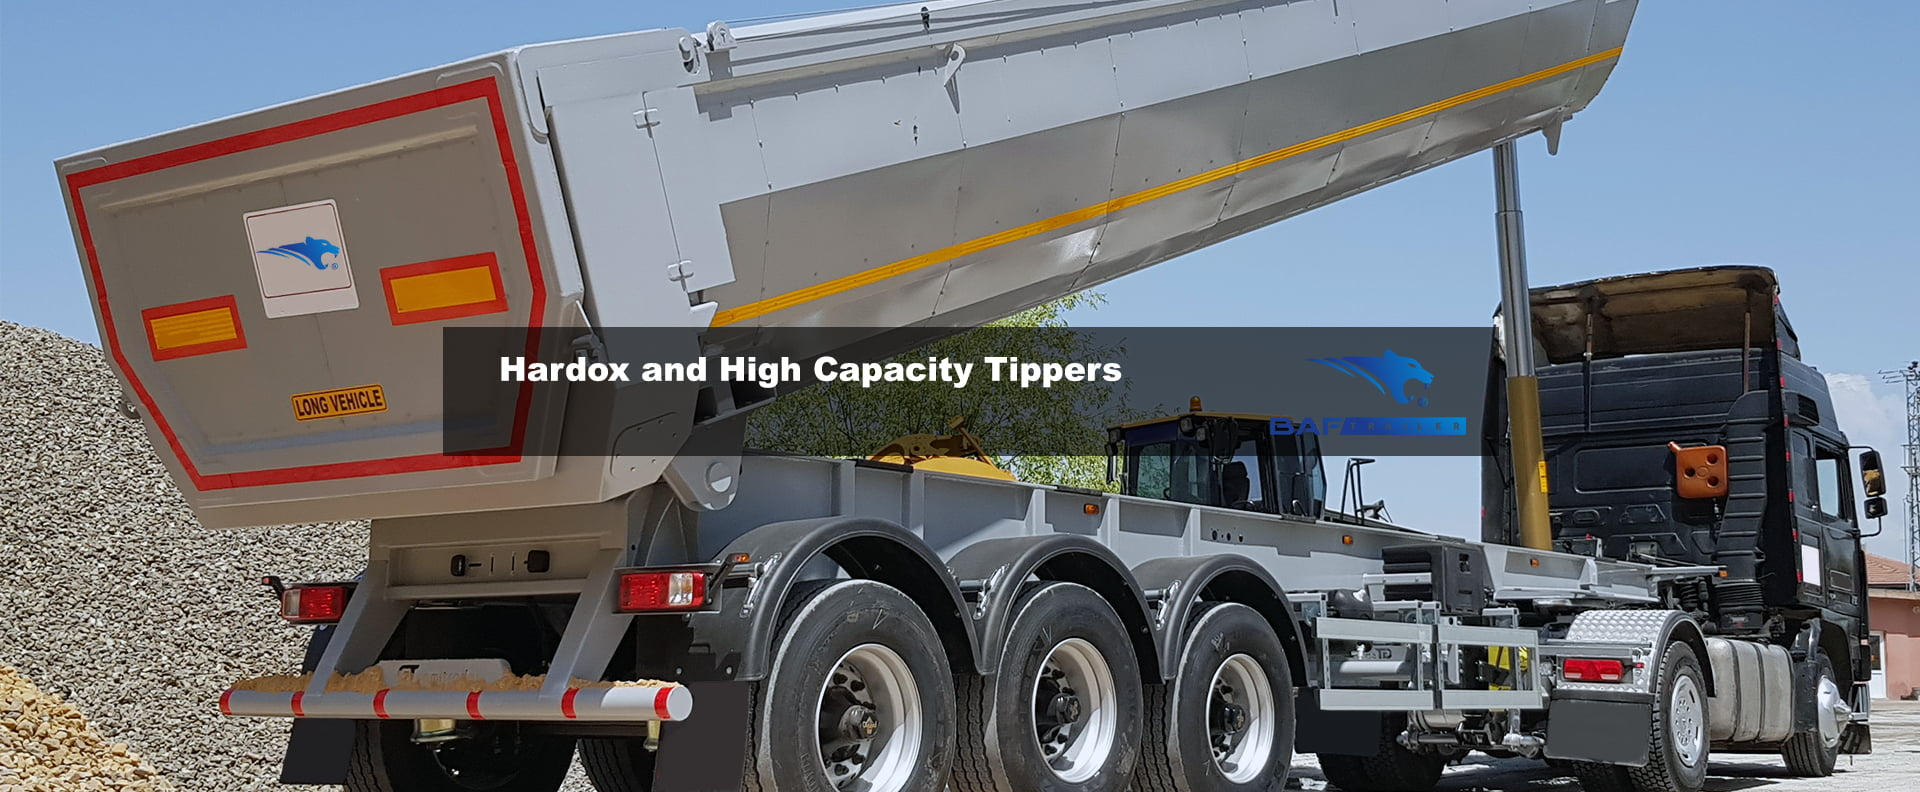 Hardox and High Capacity Tippers